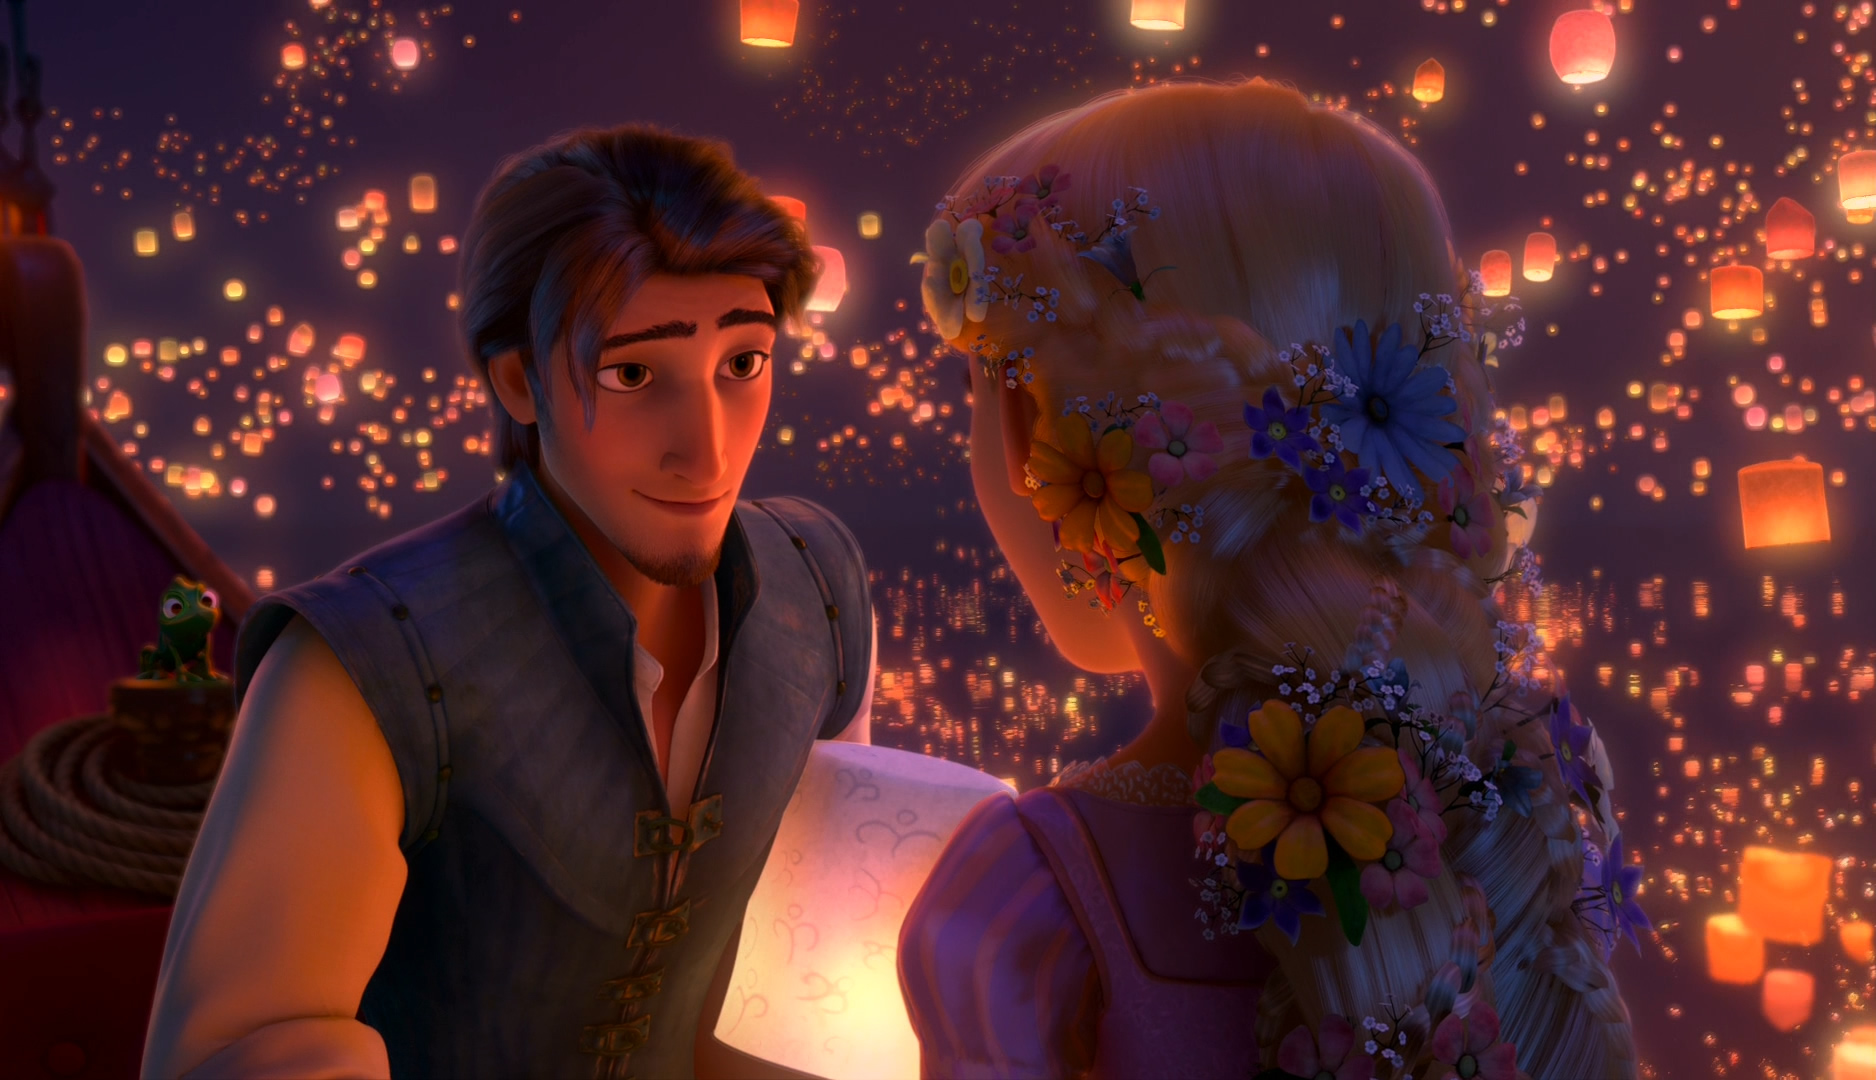 Tangled Rapunzel Cute Wallpaper By Hd Wallpapers Daily 1876x1080